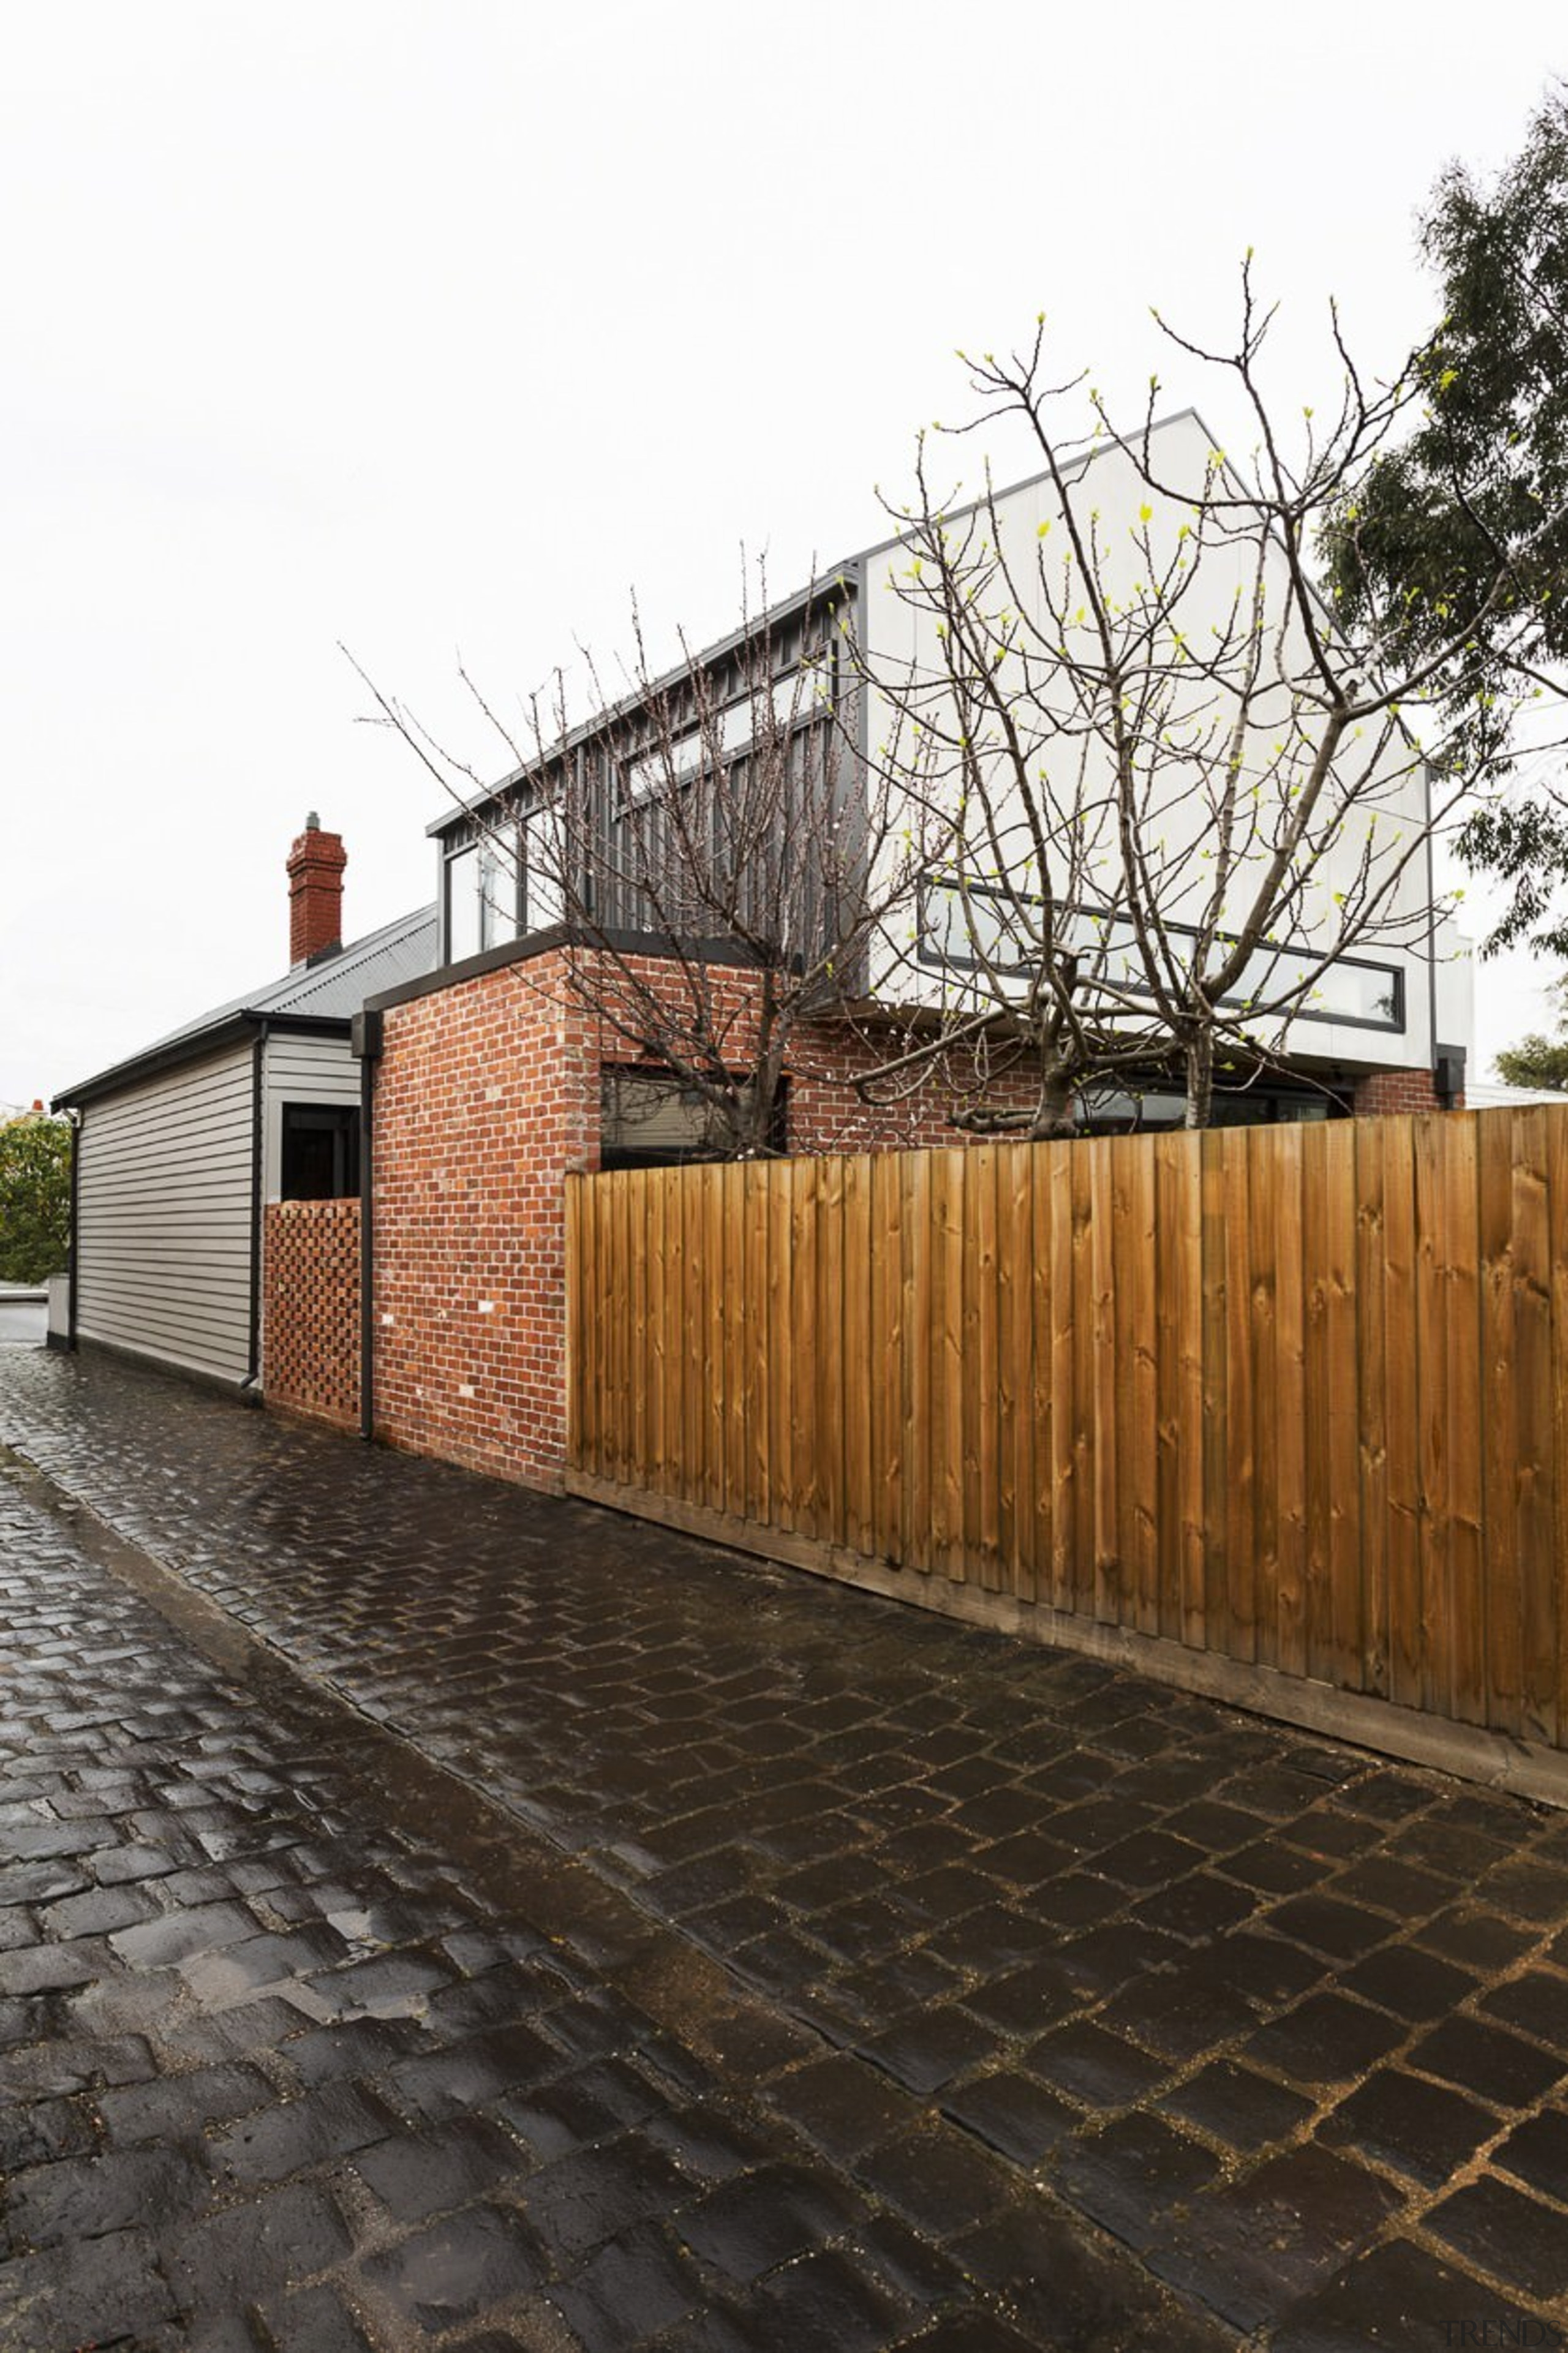 Wood, brick and concrete make for interesting exterior architecture, building, facade, fence, house, iron, outdoor structure, property, residential area, tree, walkway, wall, wood, white, black